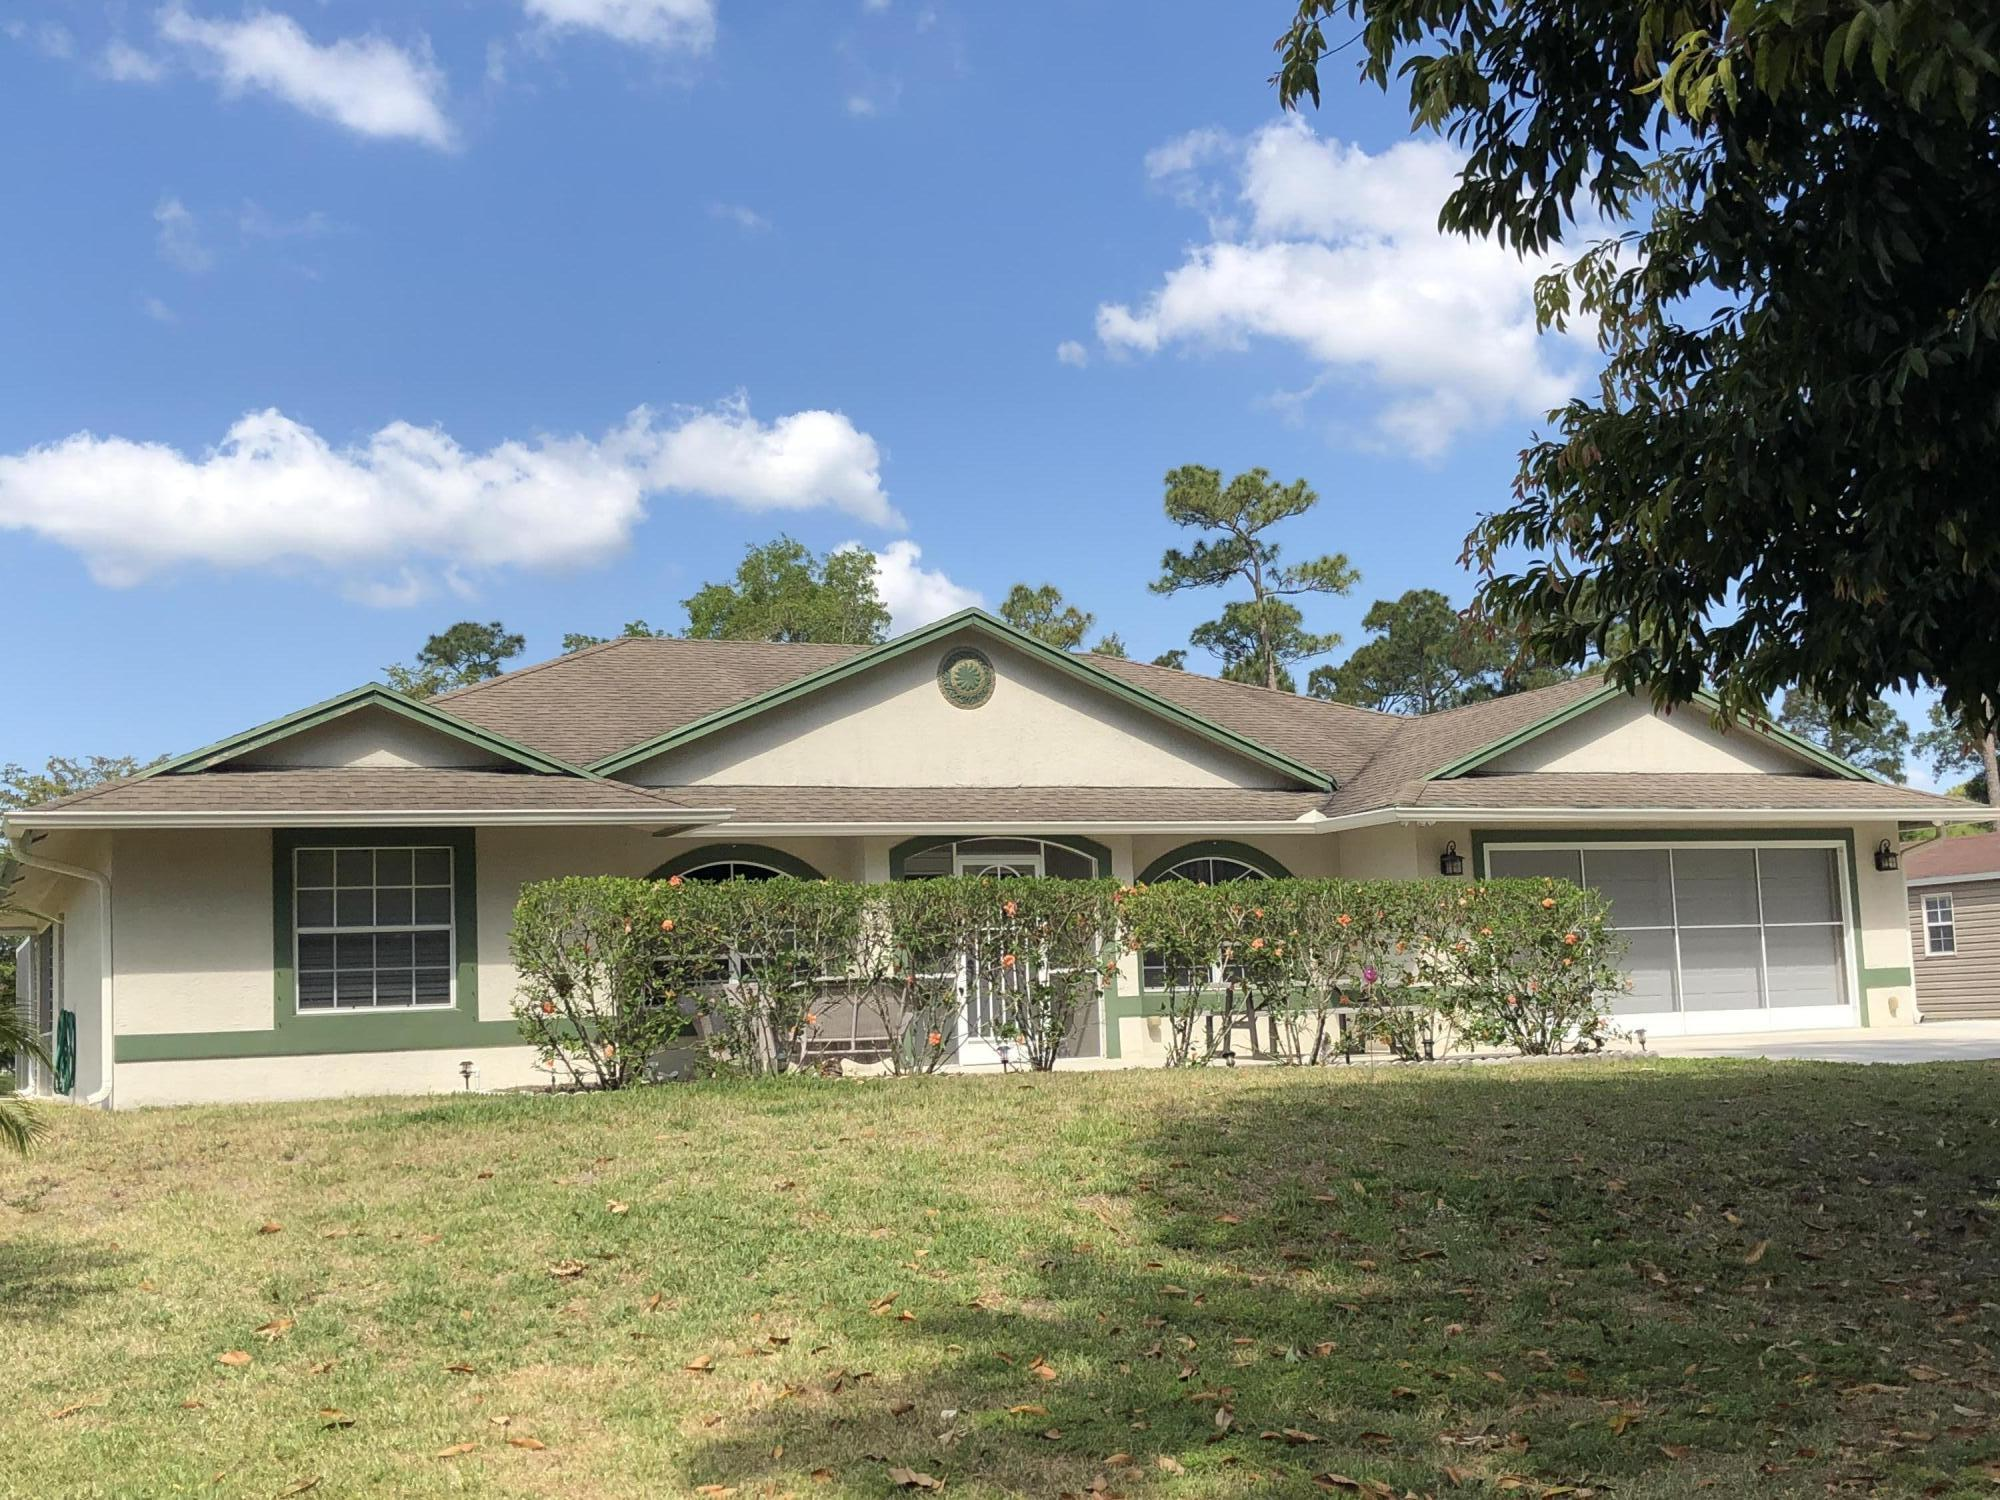 OPEN HOUSE  5/8/21,  3 BR + den, 2.5 BA, 2,900+ sq.ft, CBS Home w/ Solar heated, Chlorinated Salt water pool on 1+ acres in Jupiter Farms.  Home incl Gourmet Kitchen w/ granite counter, glass front cabinets & adjoining bay window-breakfast nook that overlooks pool.  Thoughtful upgrades incl: 11'x8' Butlers Pantry/Laundry room for extra storage & workspace, Crown molding w/ indirect lighting throughout living area; entry located den/office, 18' tile floors laid on diagonal throughout home, nested screen panels on garage door & screen door on garage side pedestrian door, making garage a cool, inviting workspace, 39'x15' patio overlooks pool; also adjacent to pool is 28'x11' orchid greenhouse w/ self-misting watering system.  Wonderful family home, on paved road w/ sidewalk in Jupiter Farms